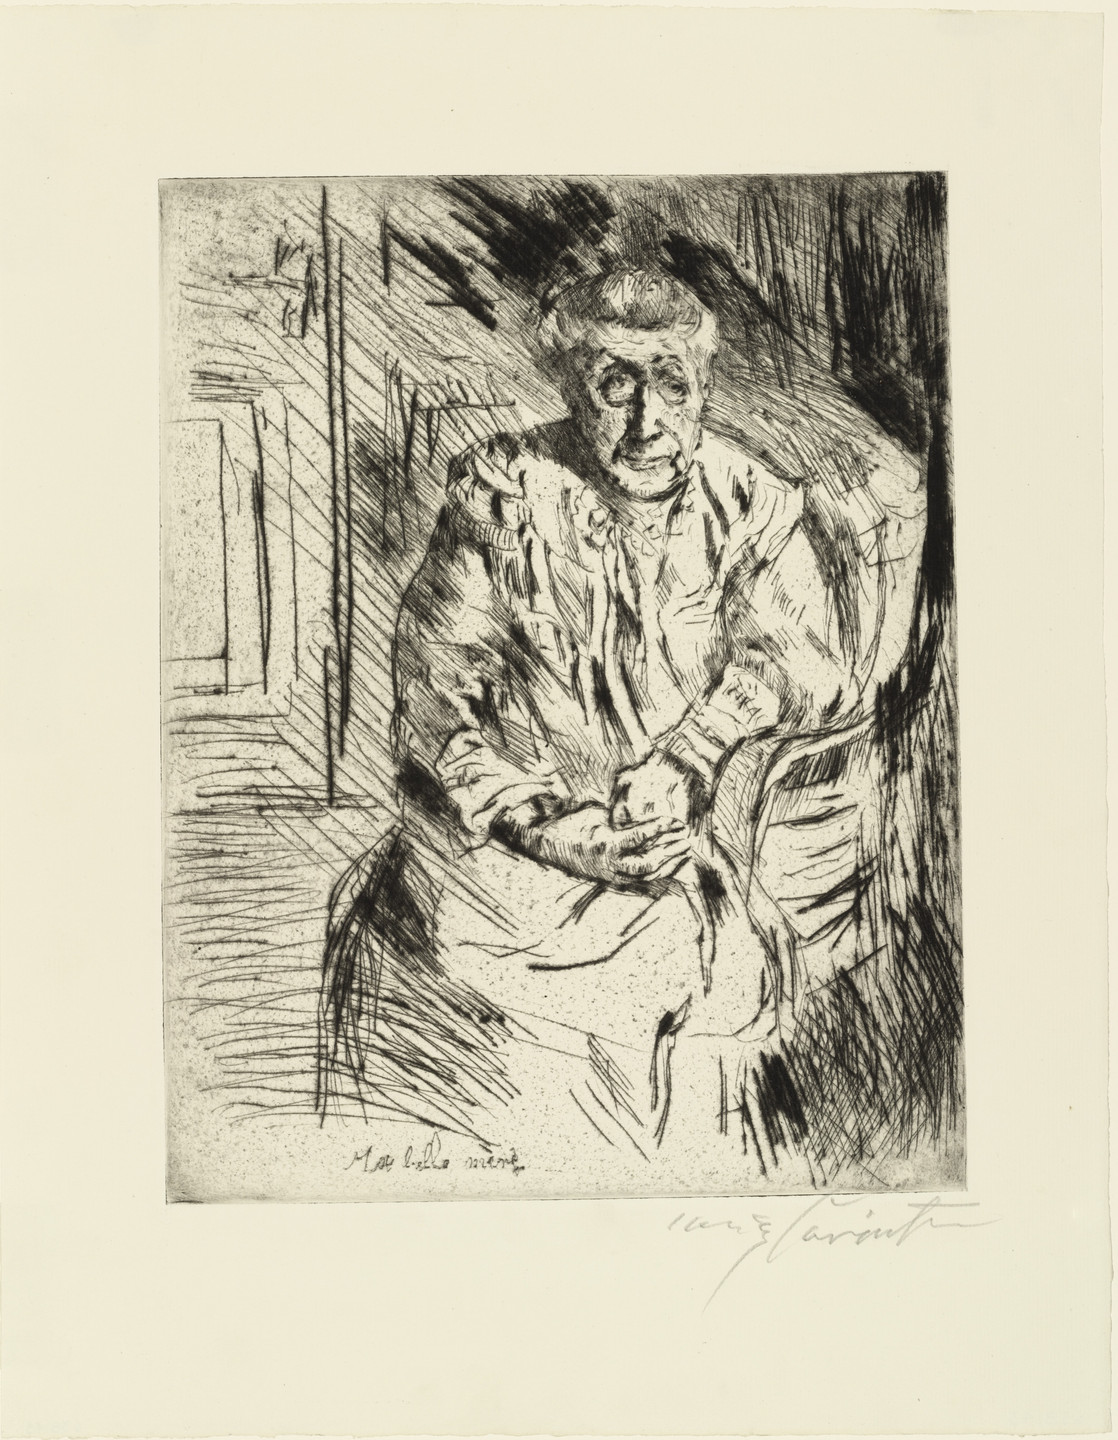 Lovis Corinth. My Mother-in-Law (Ma belle mère) from the portfolio At the Corinthians (Bei den Corinthern). (1919)